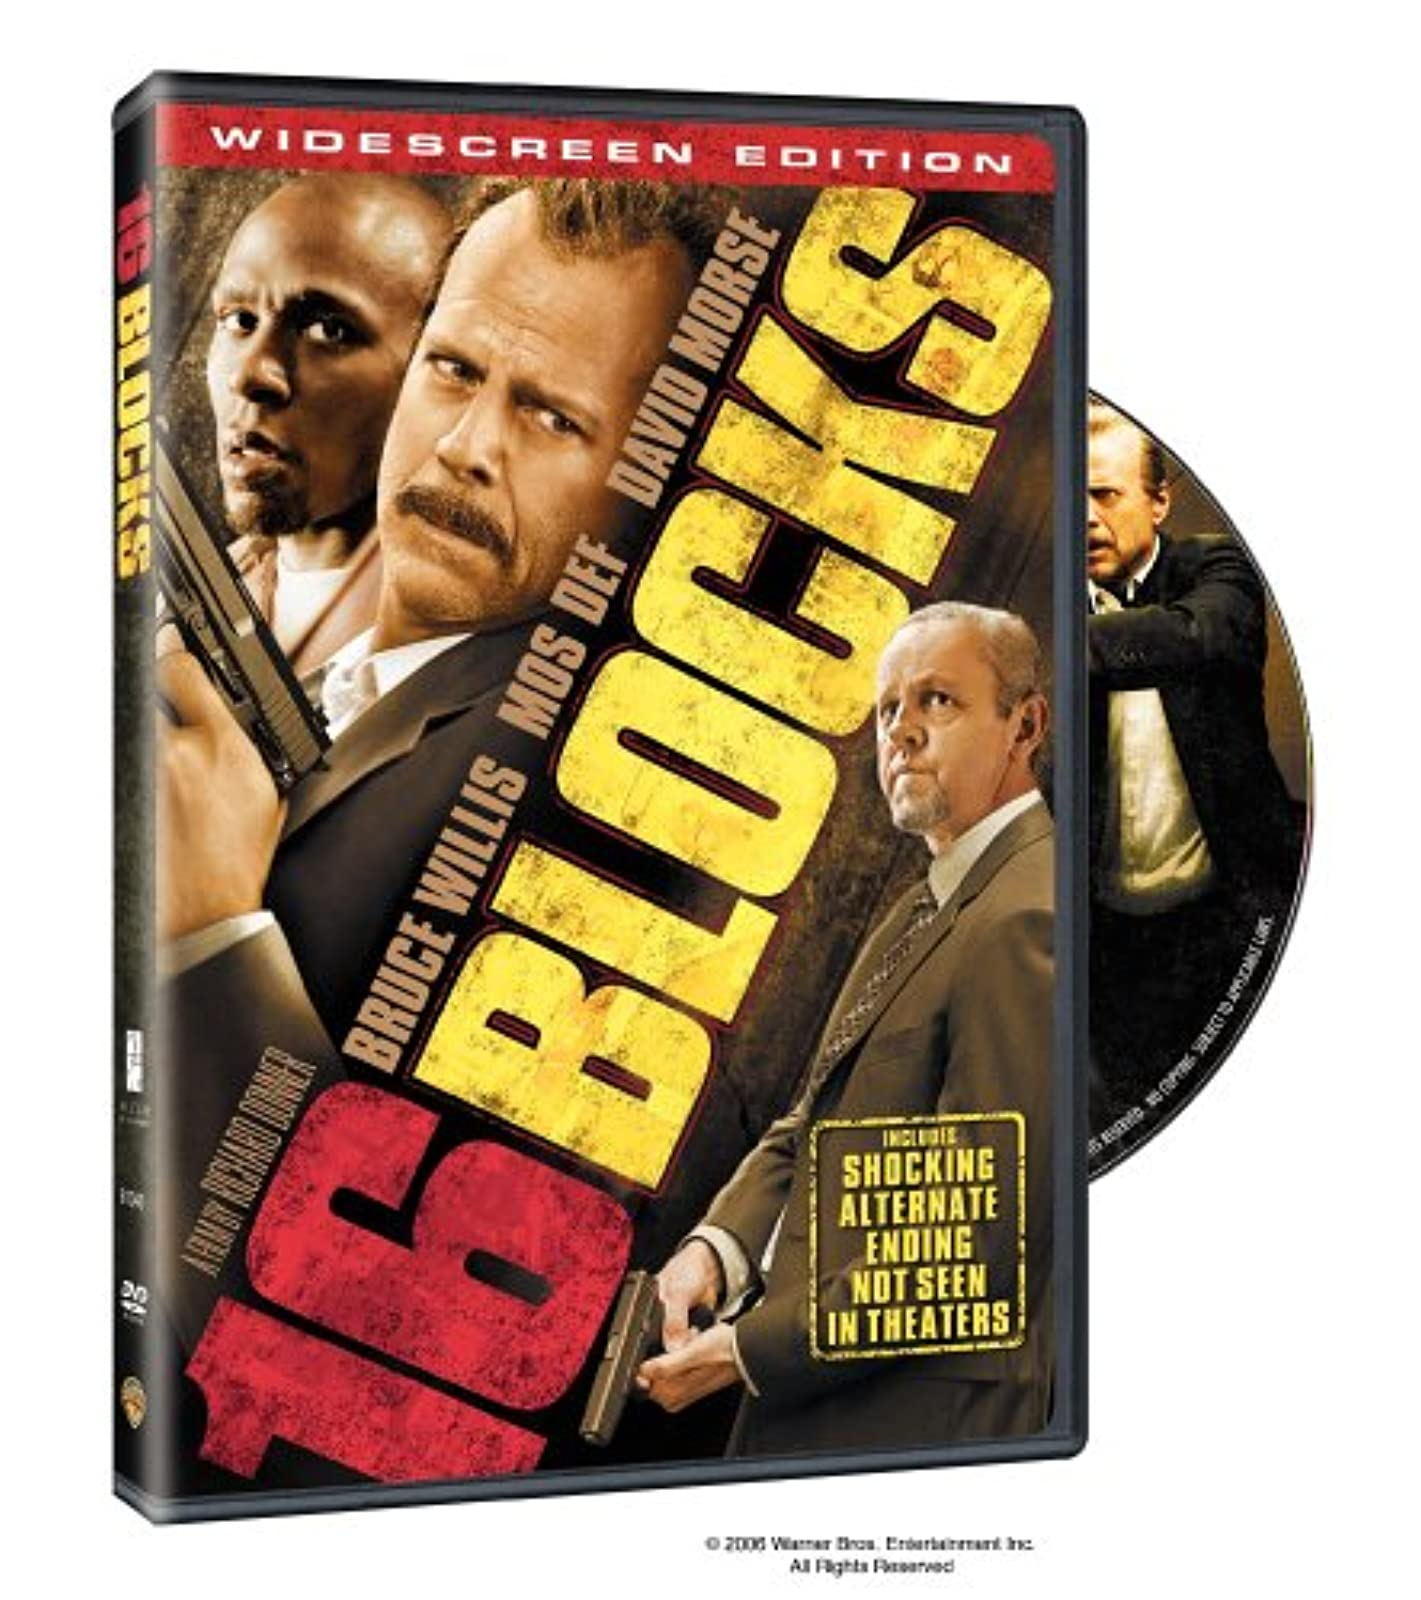 16 Blocks Widescreen Edition On DVD With Bruce Willis Drama